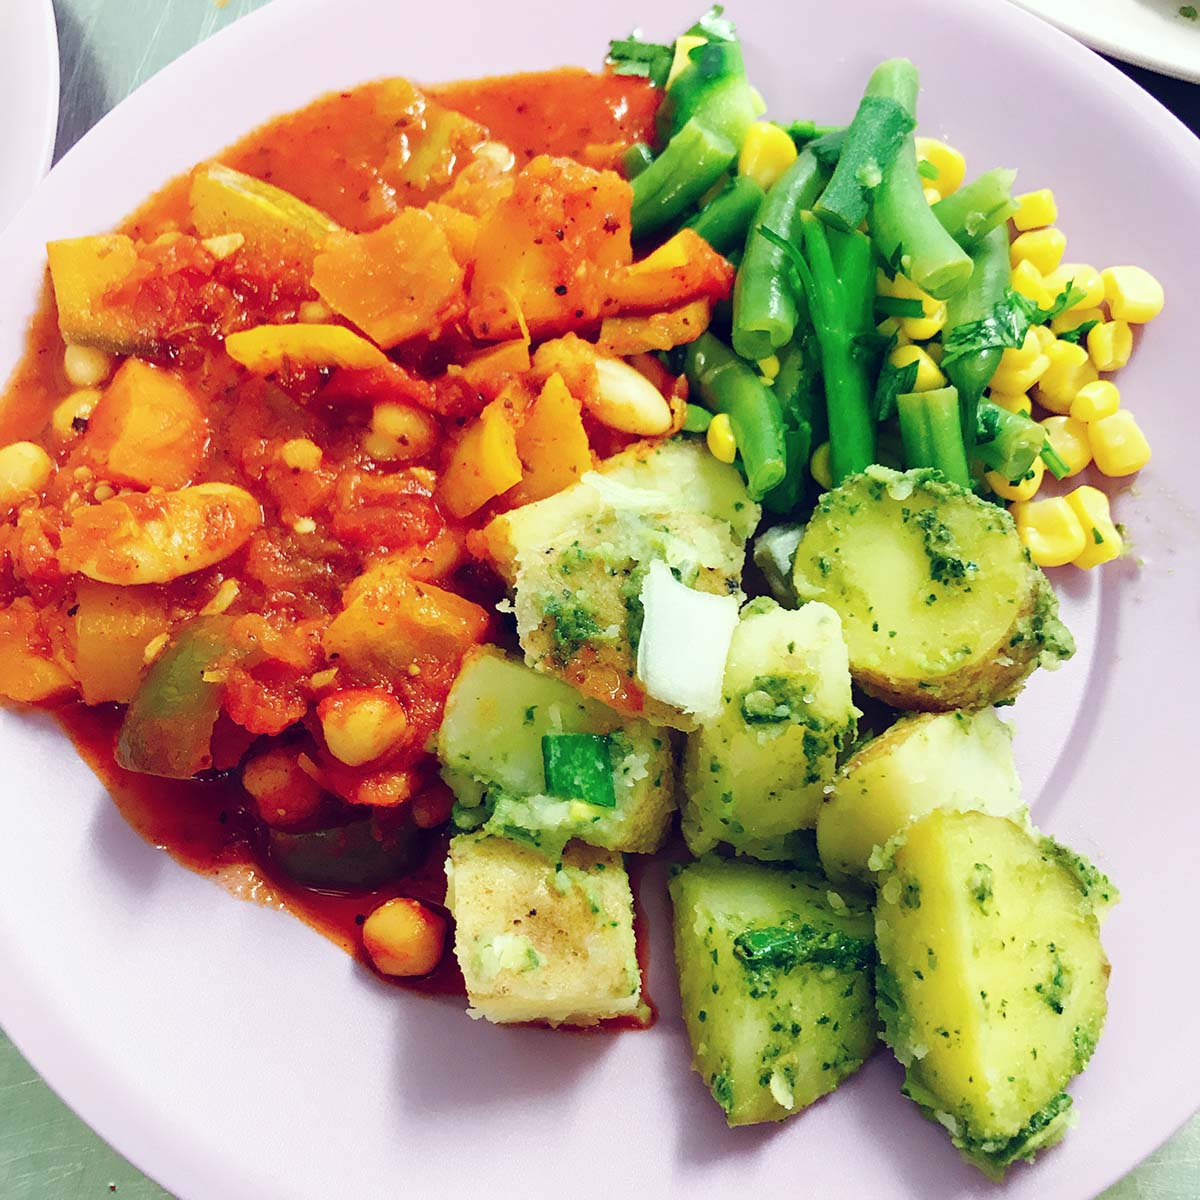 pumpkin stew on lilac plate with potatoes and salad